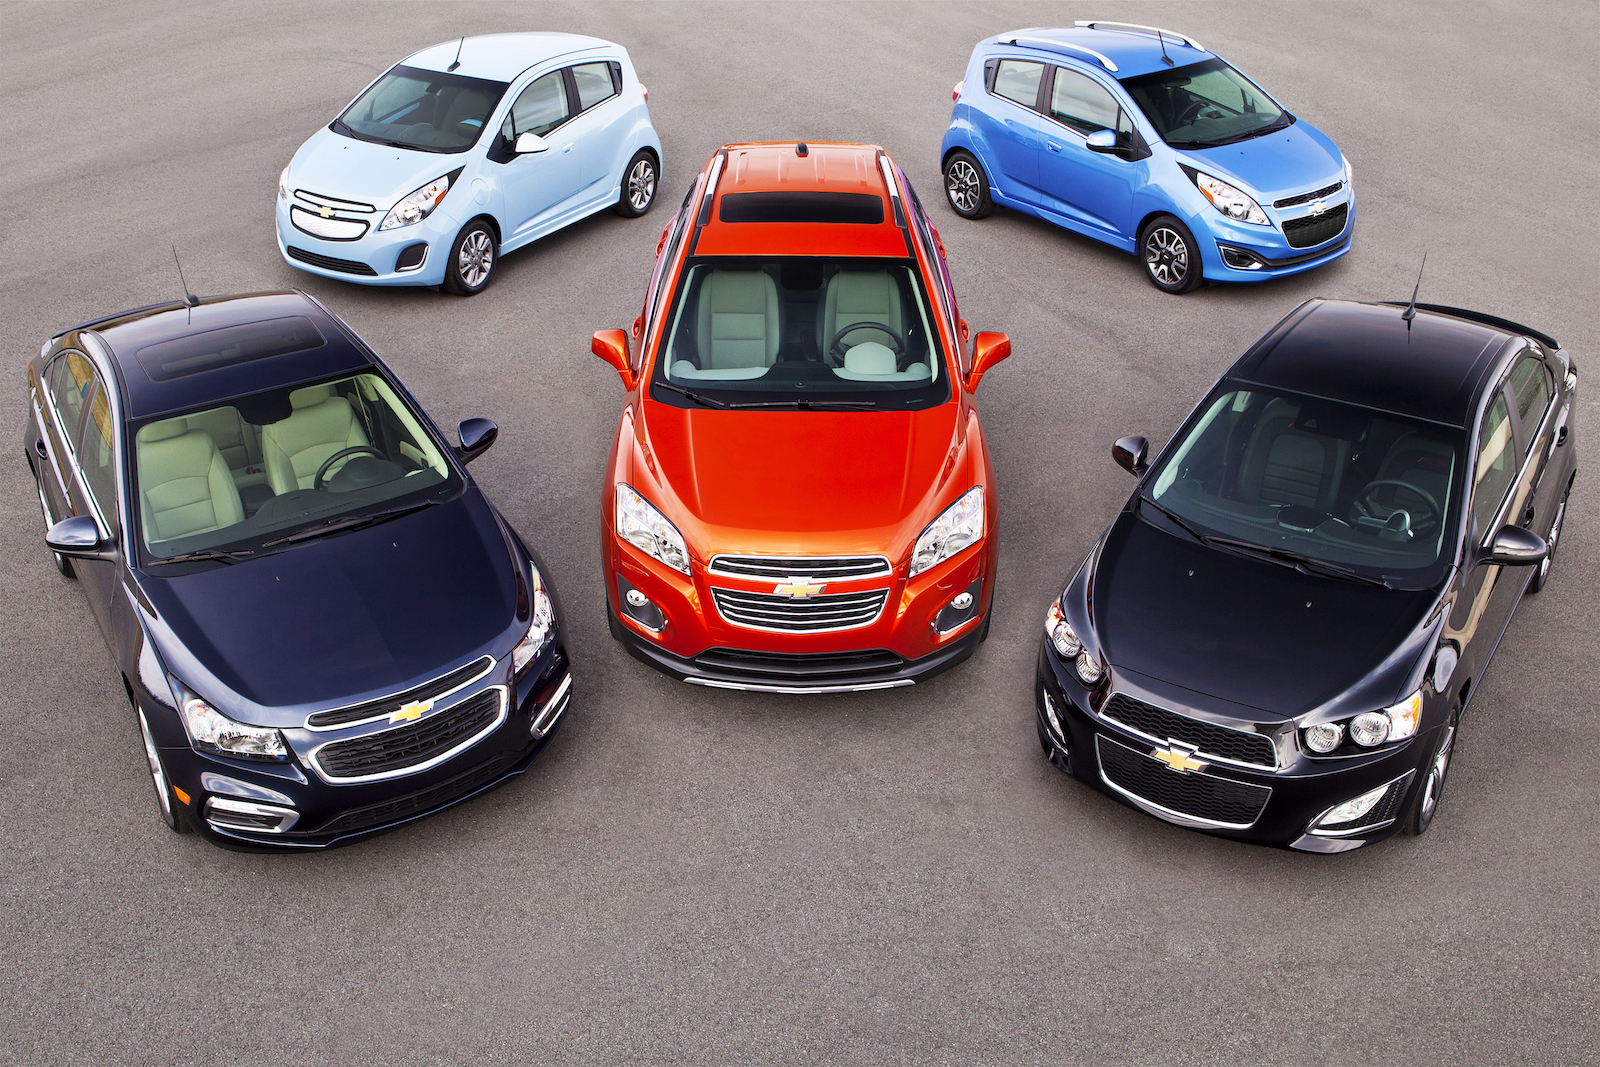 Chevrolet adds Trax to growing small vehicle lineup